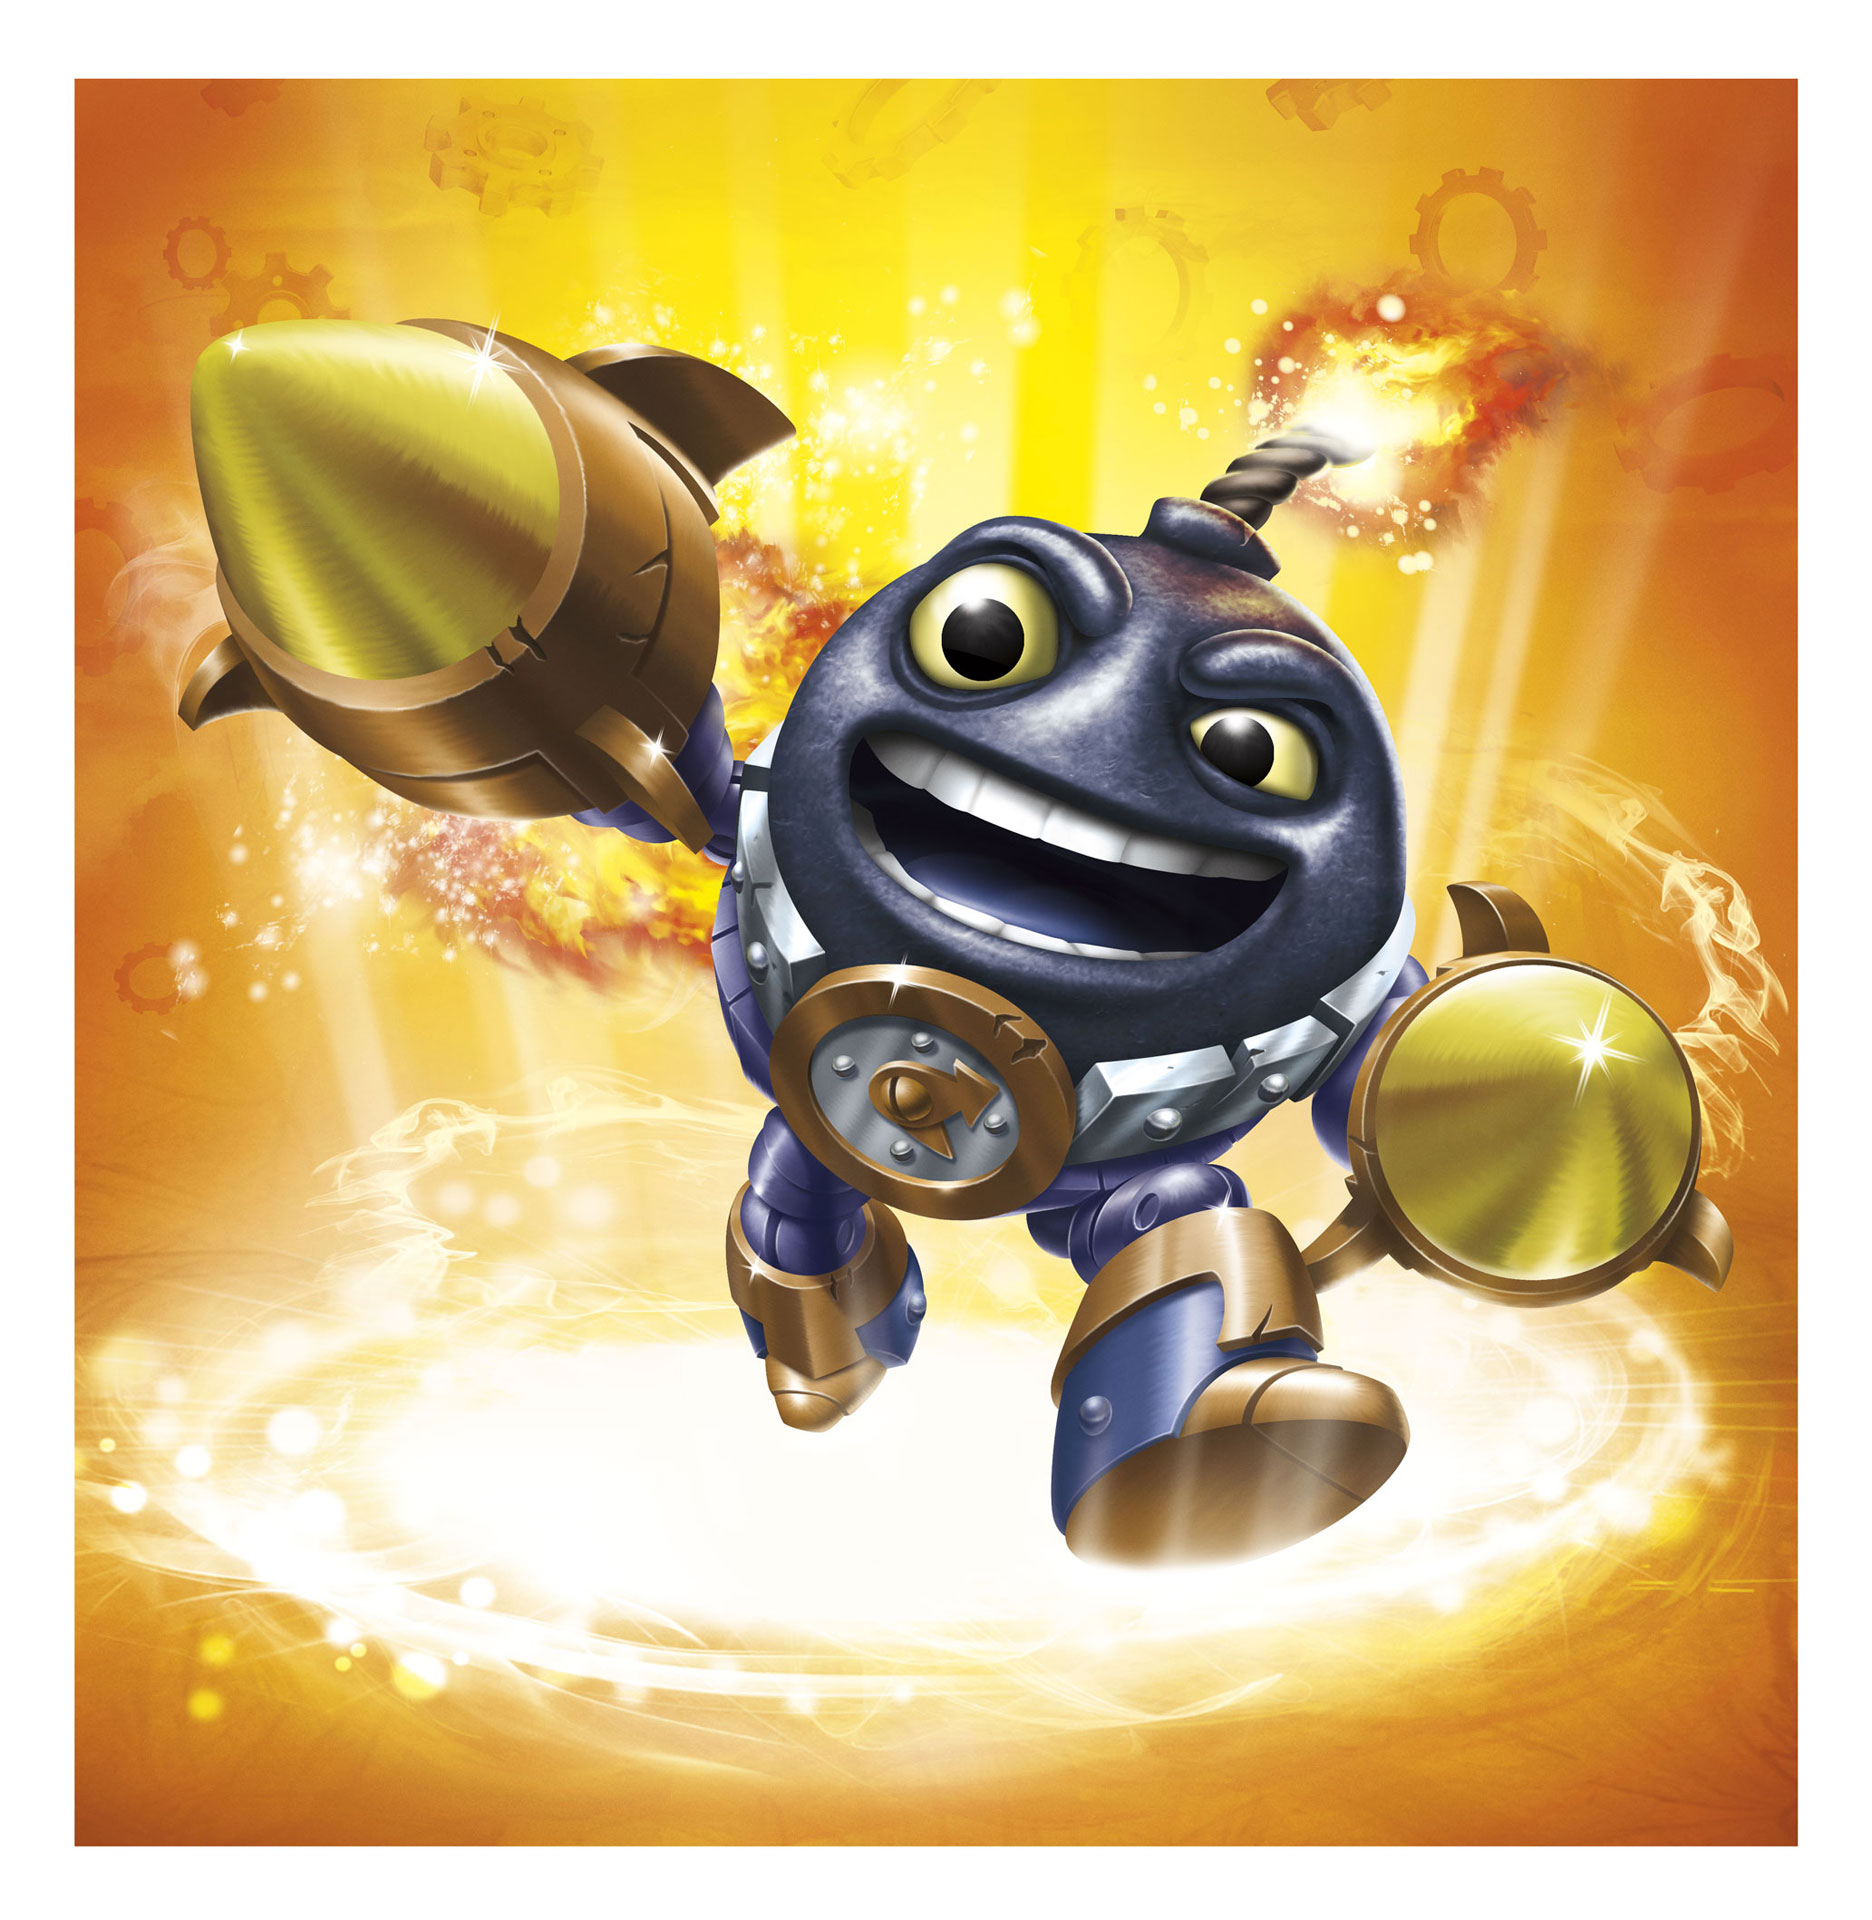 New Skylanders Swap Force Characters, Details, Images and ...